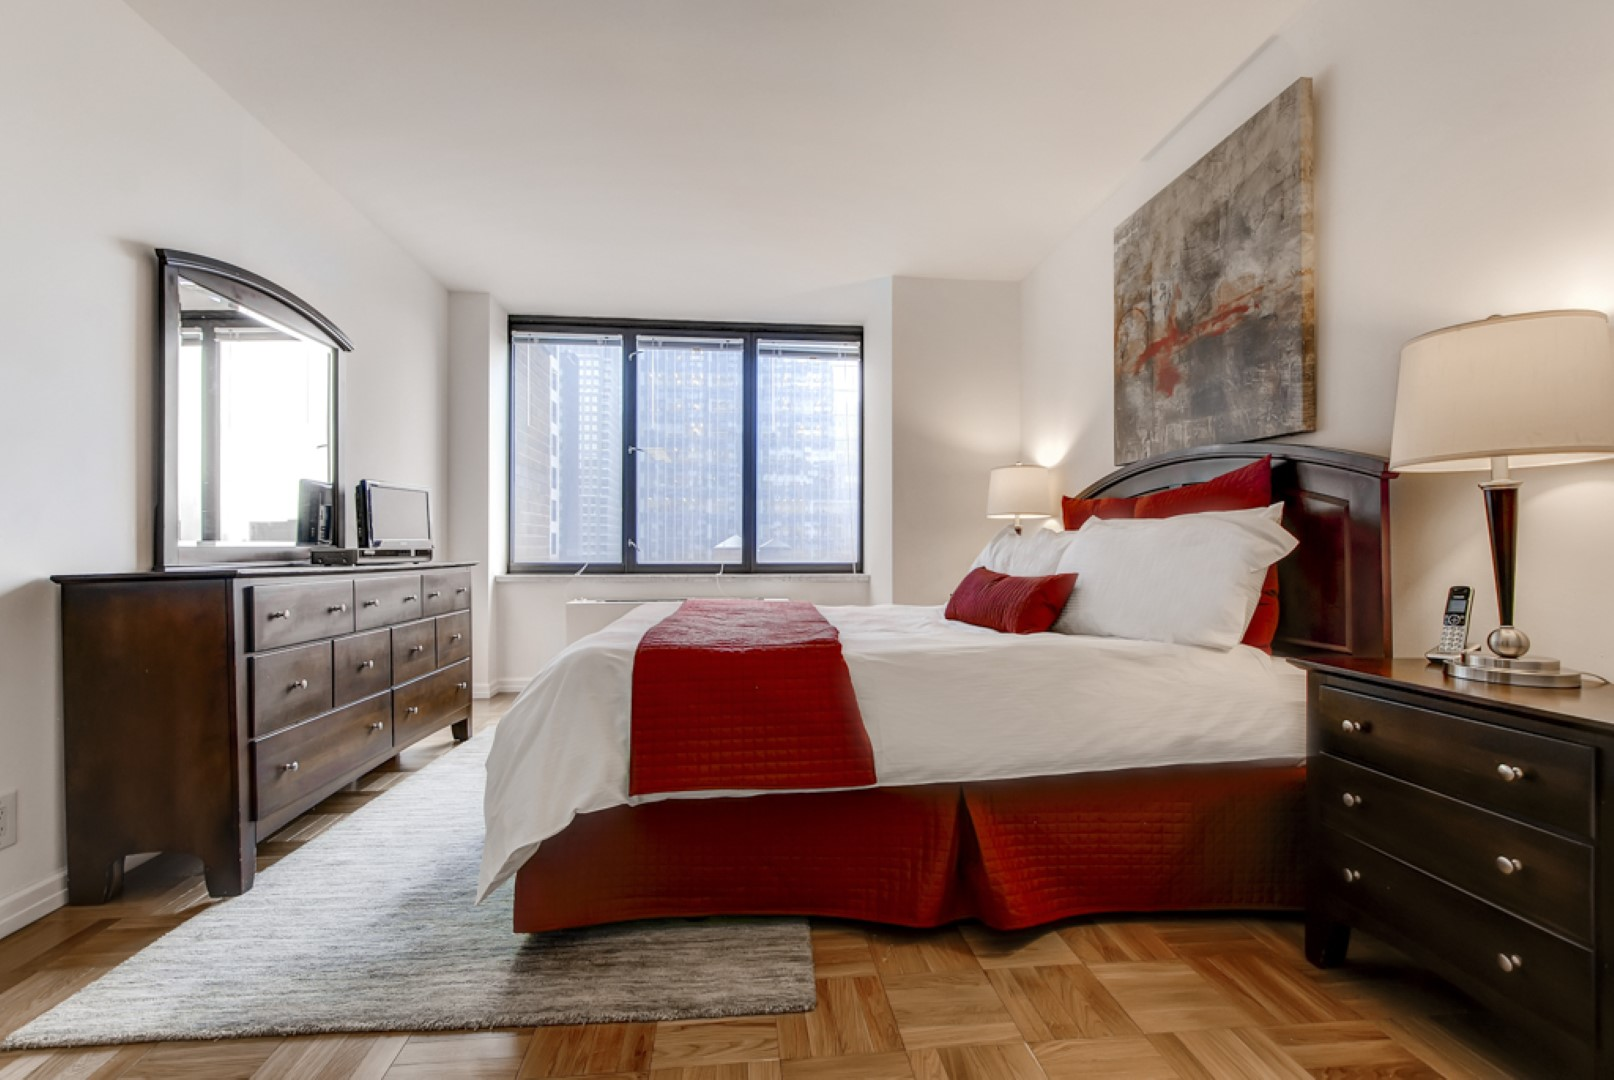 Bed at 56th Street Symphony House Apartments, Midtown West, New York